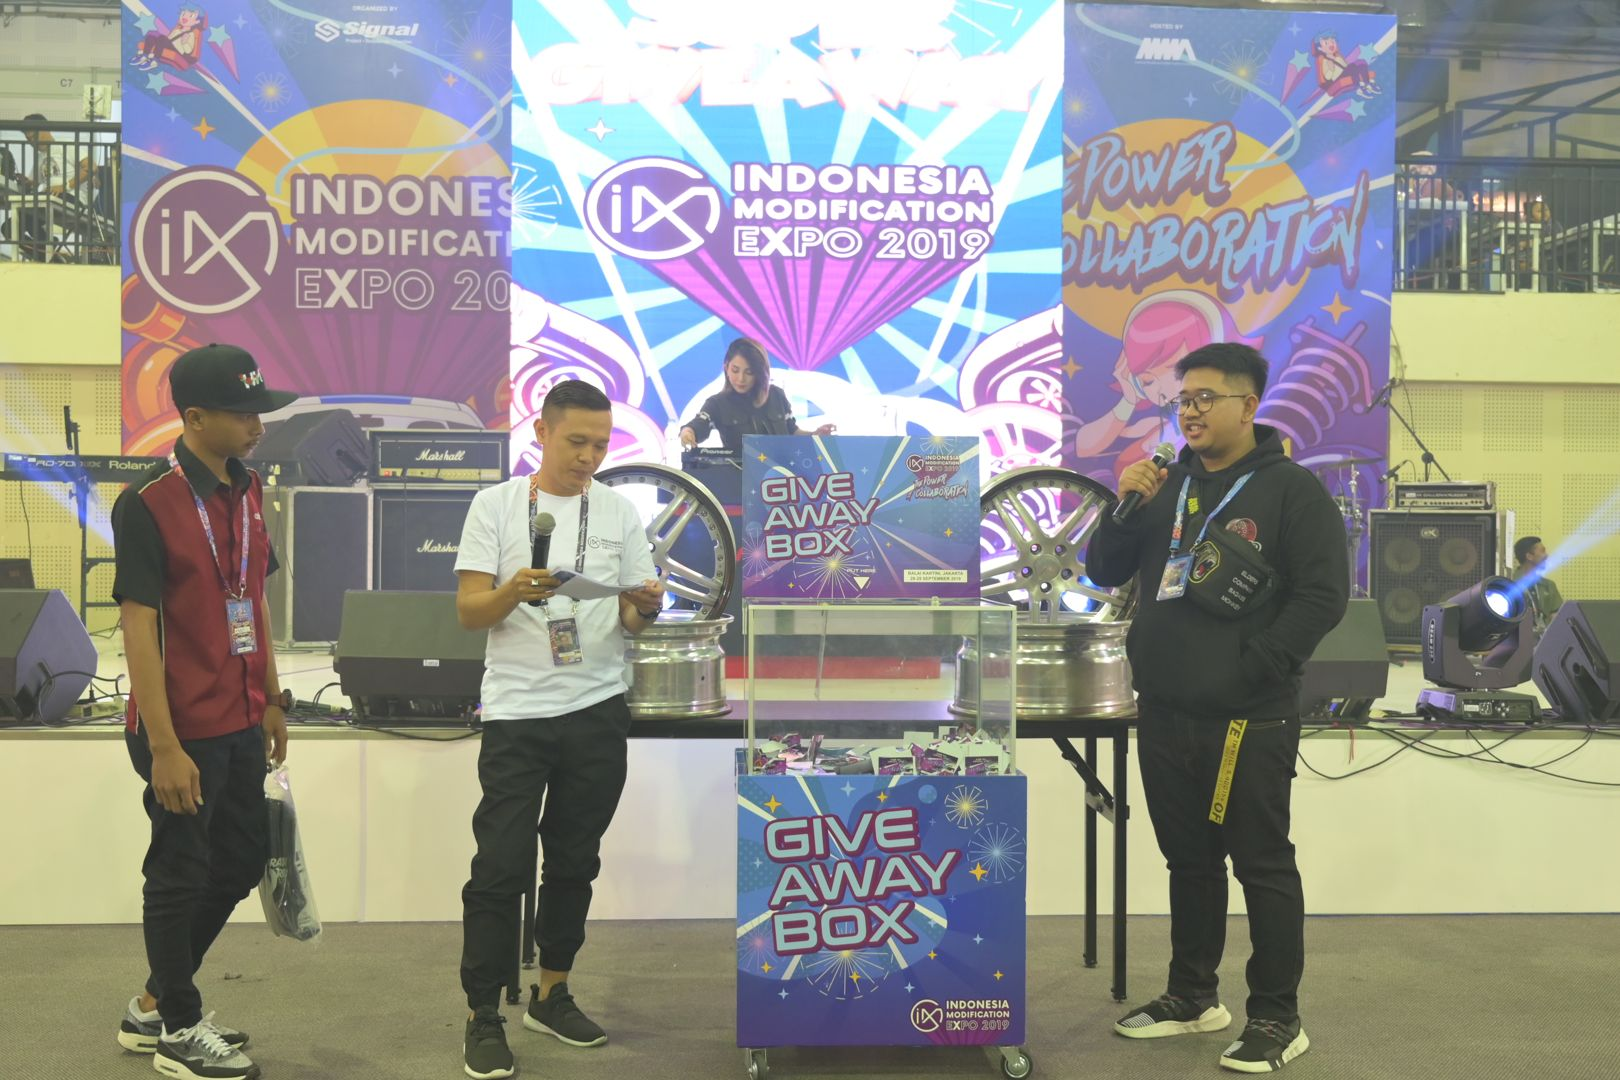 Imx - Indonesia modification expo giveaway 2019 (7)